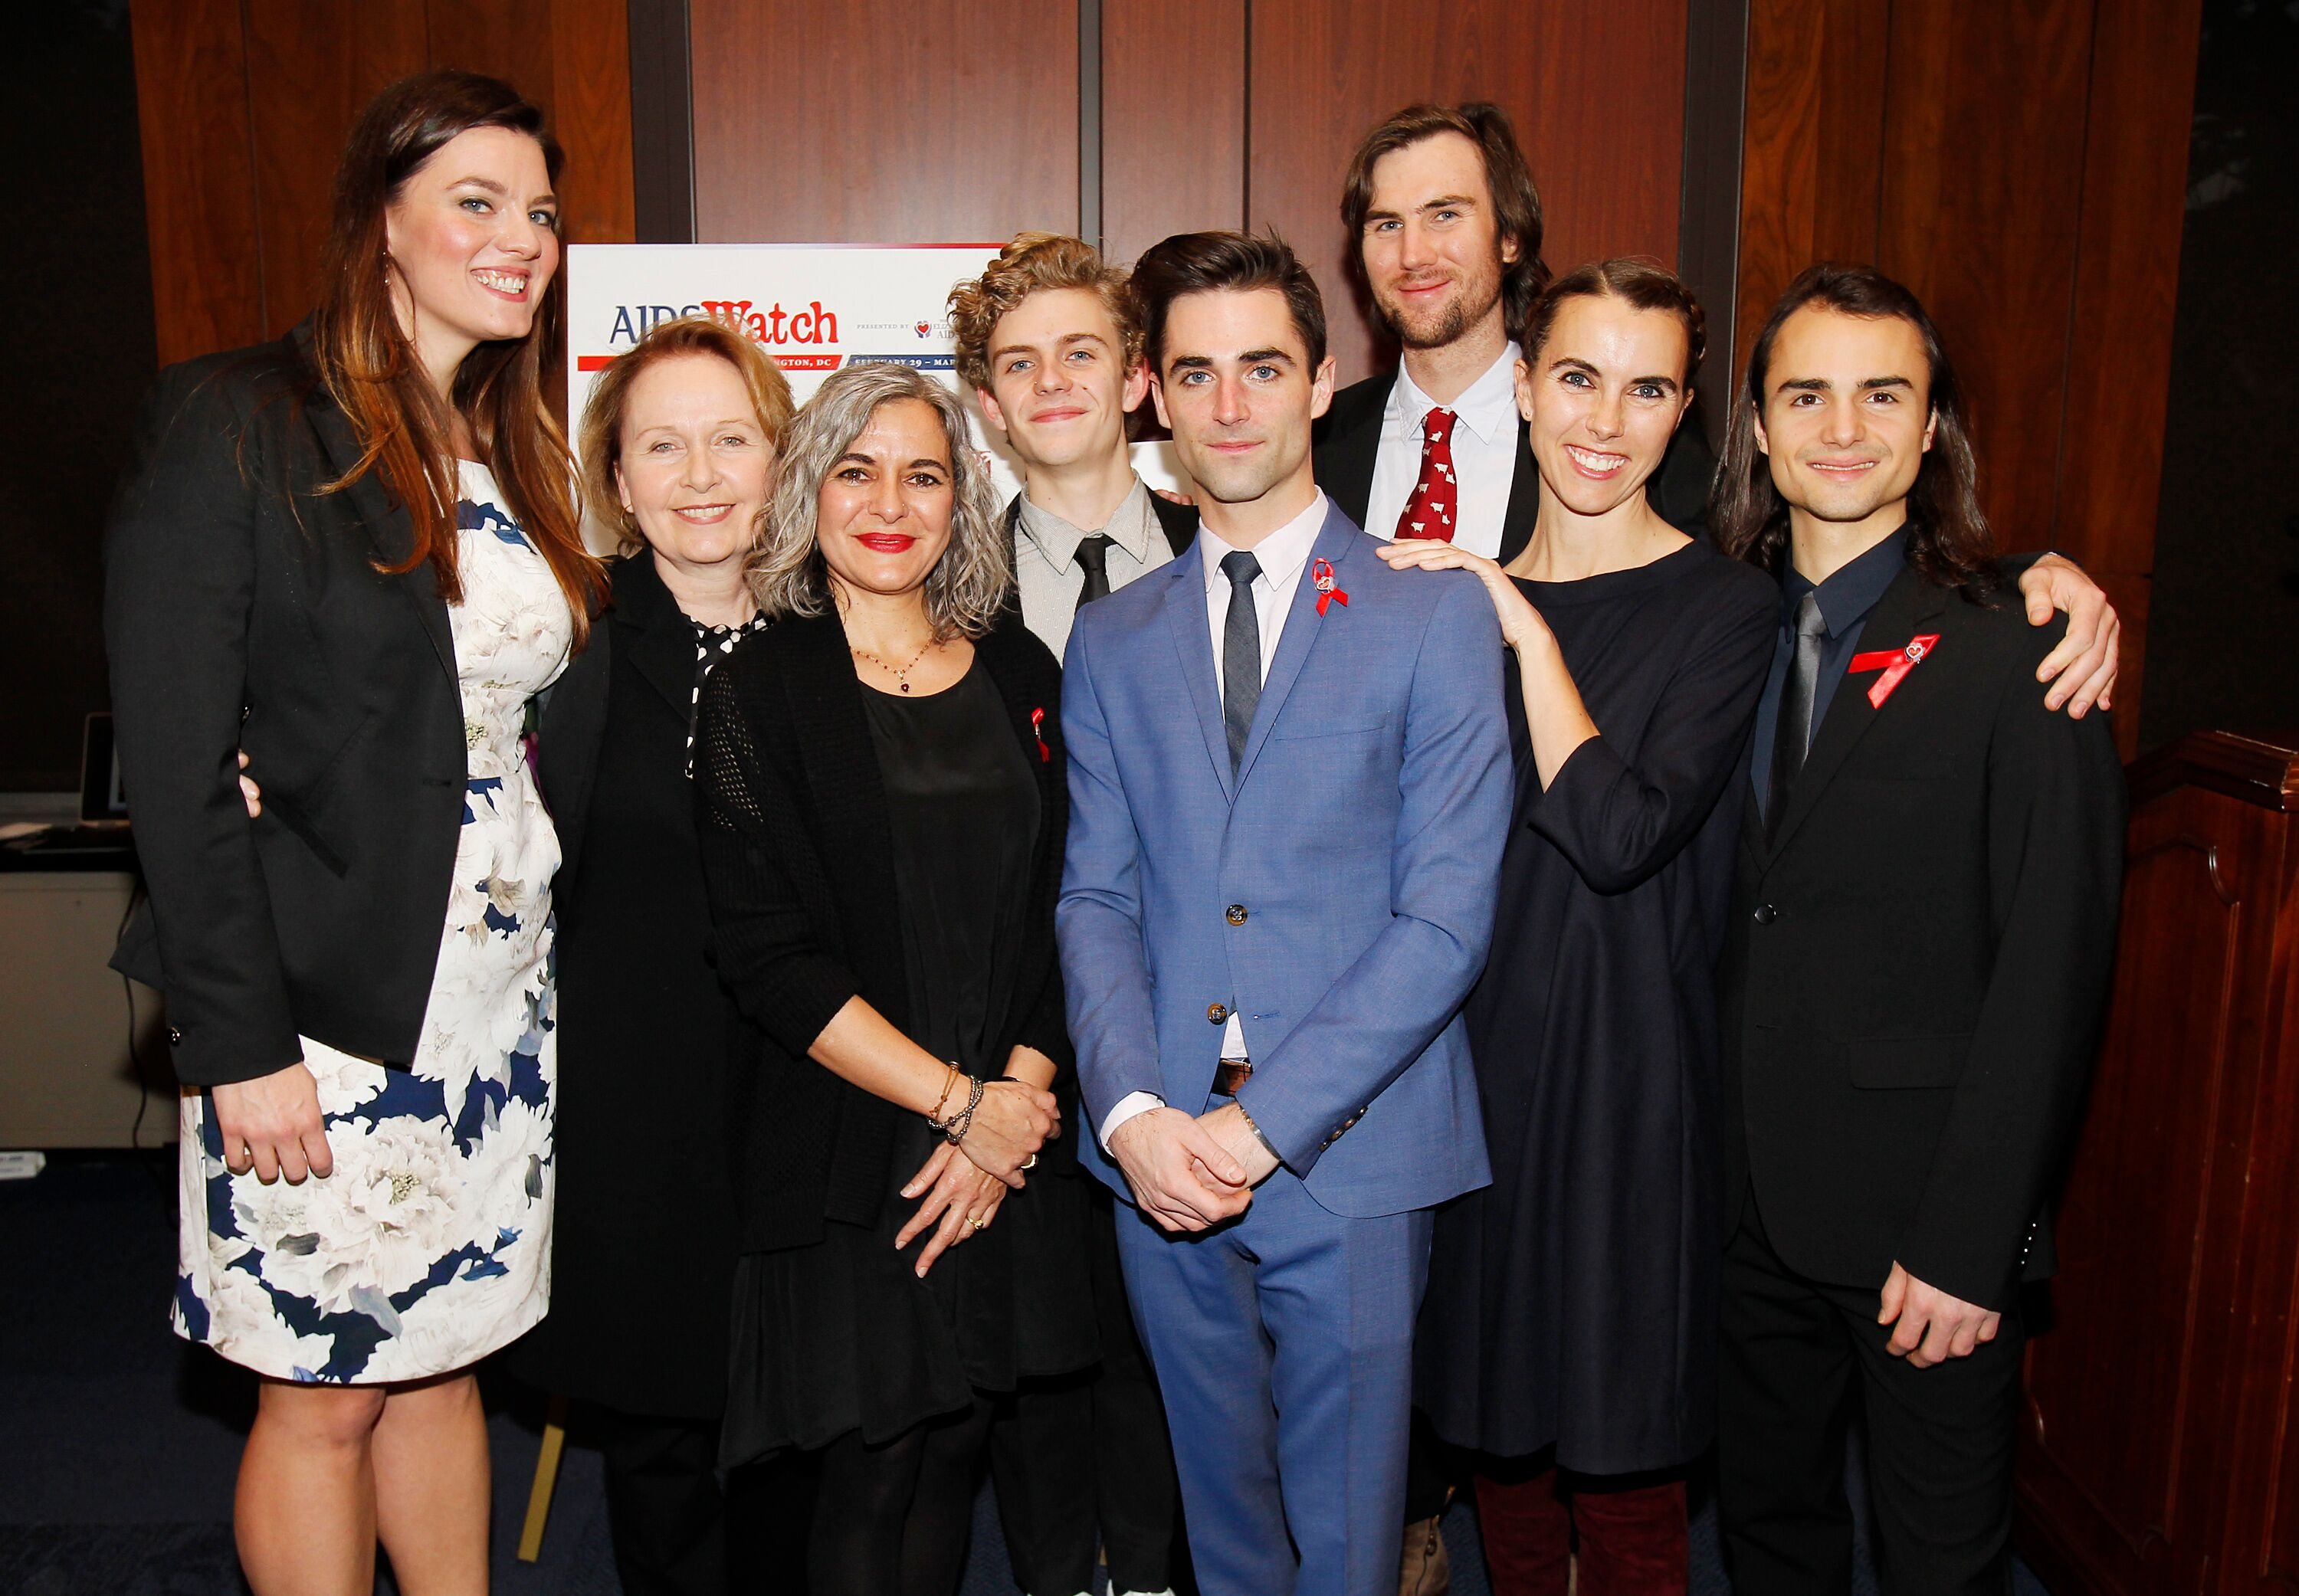 Elizabeth Taylor's family members attend the AIDSWatch 2016 Positive Leadership Award Reception | Getty Images / Global Images Ukraine